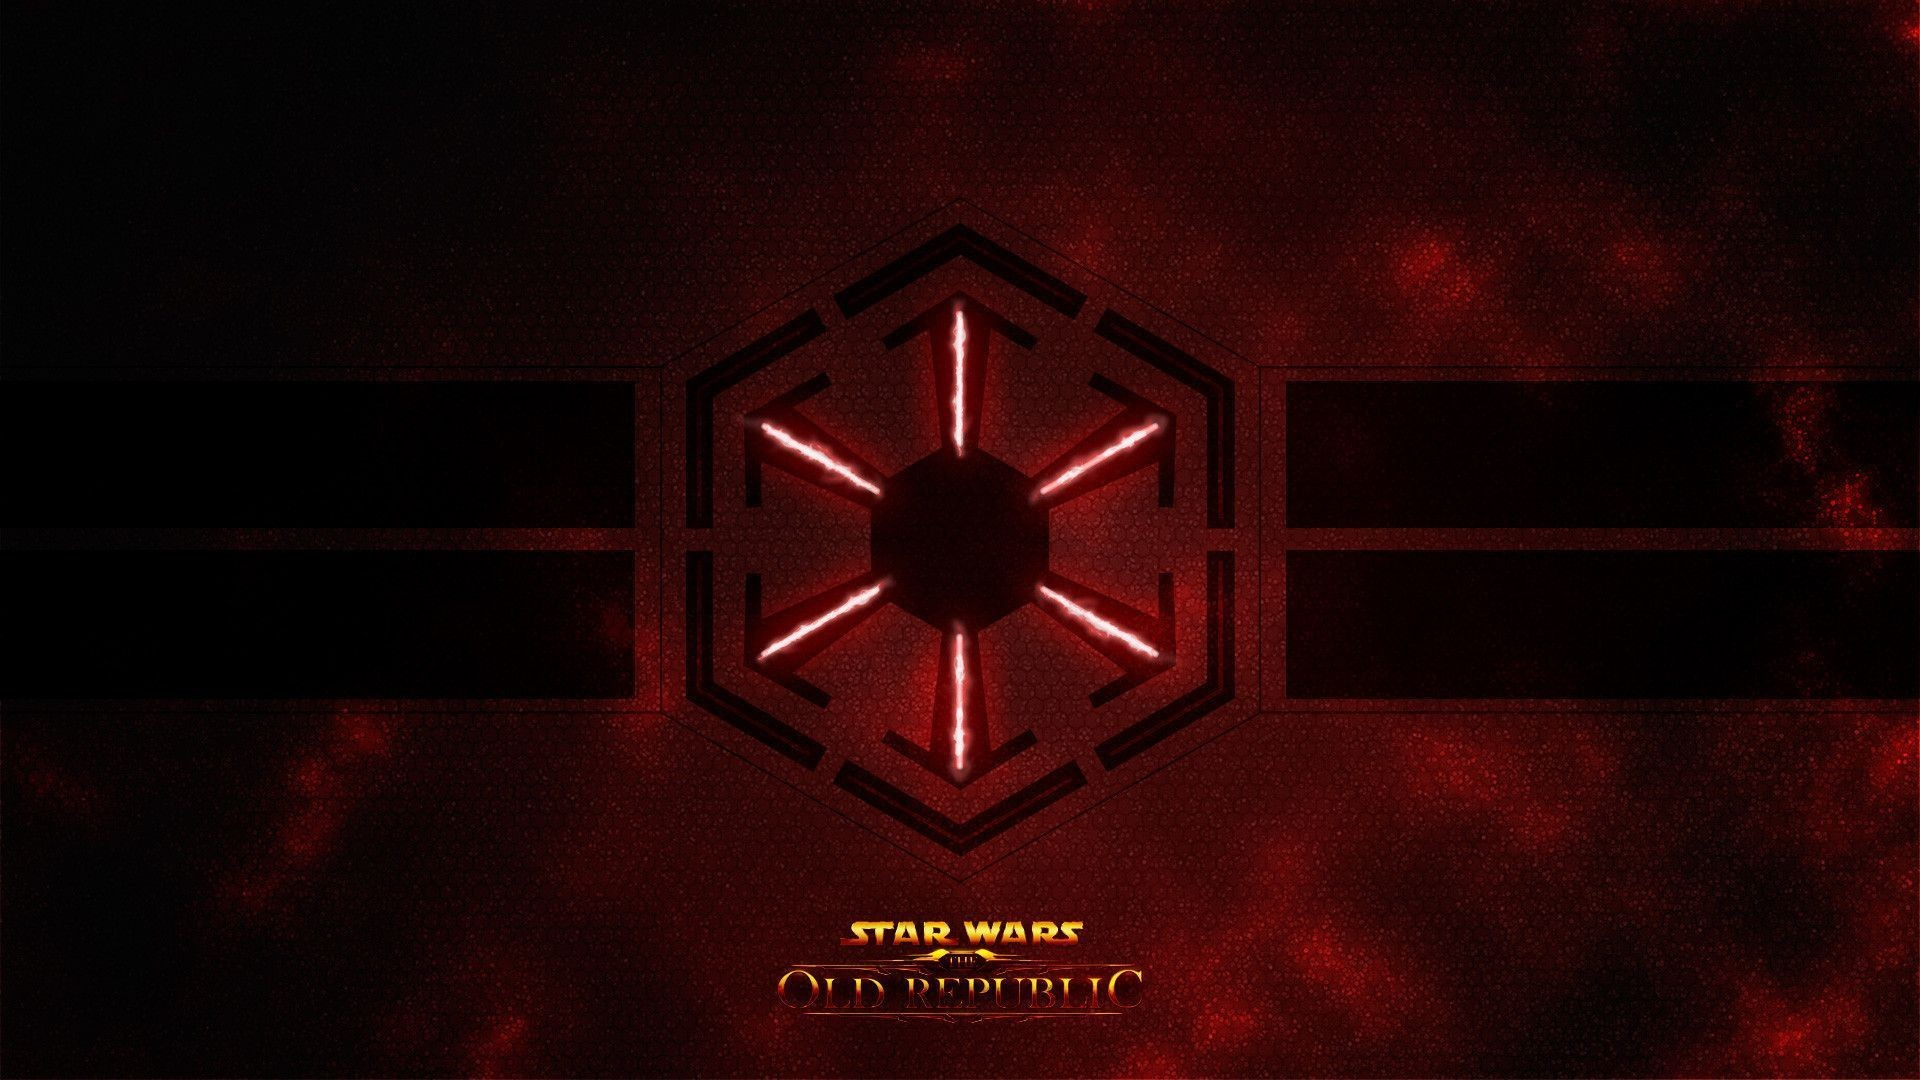 Sith Wallpapers